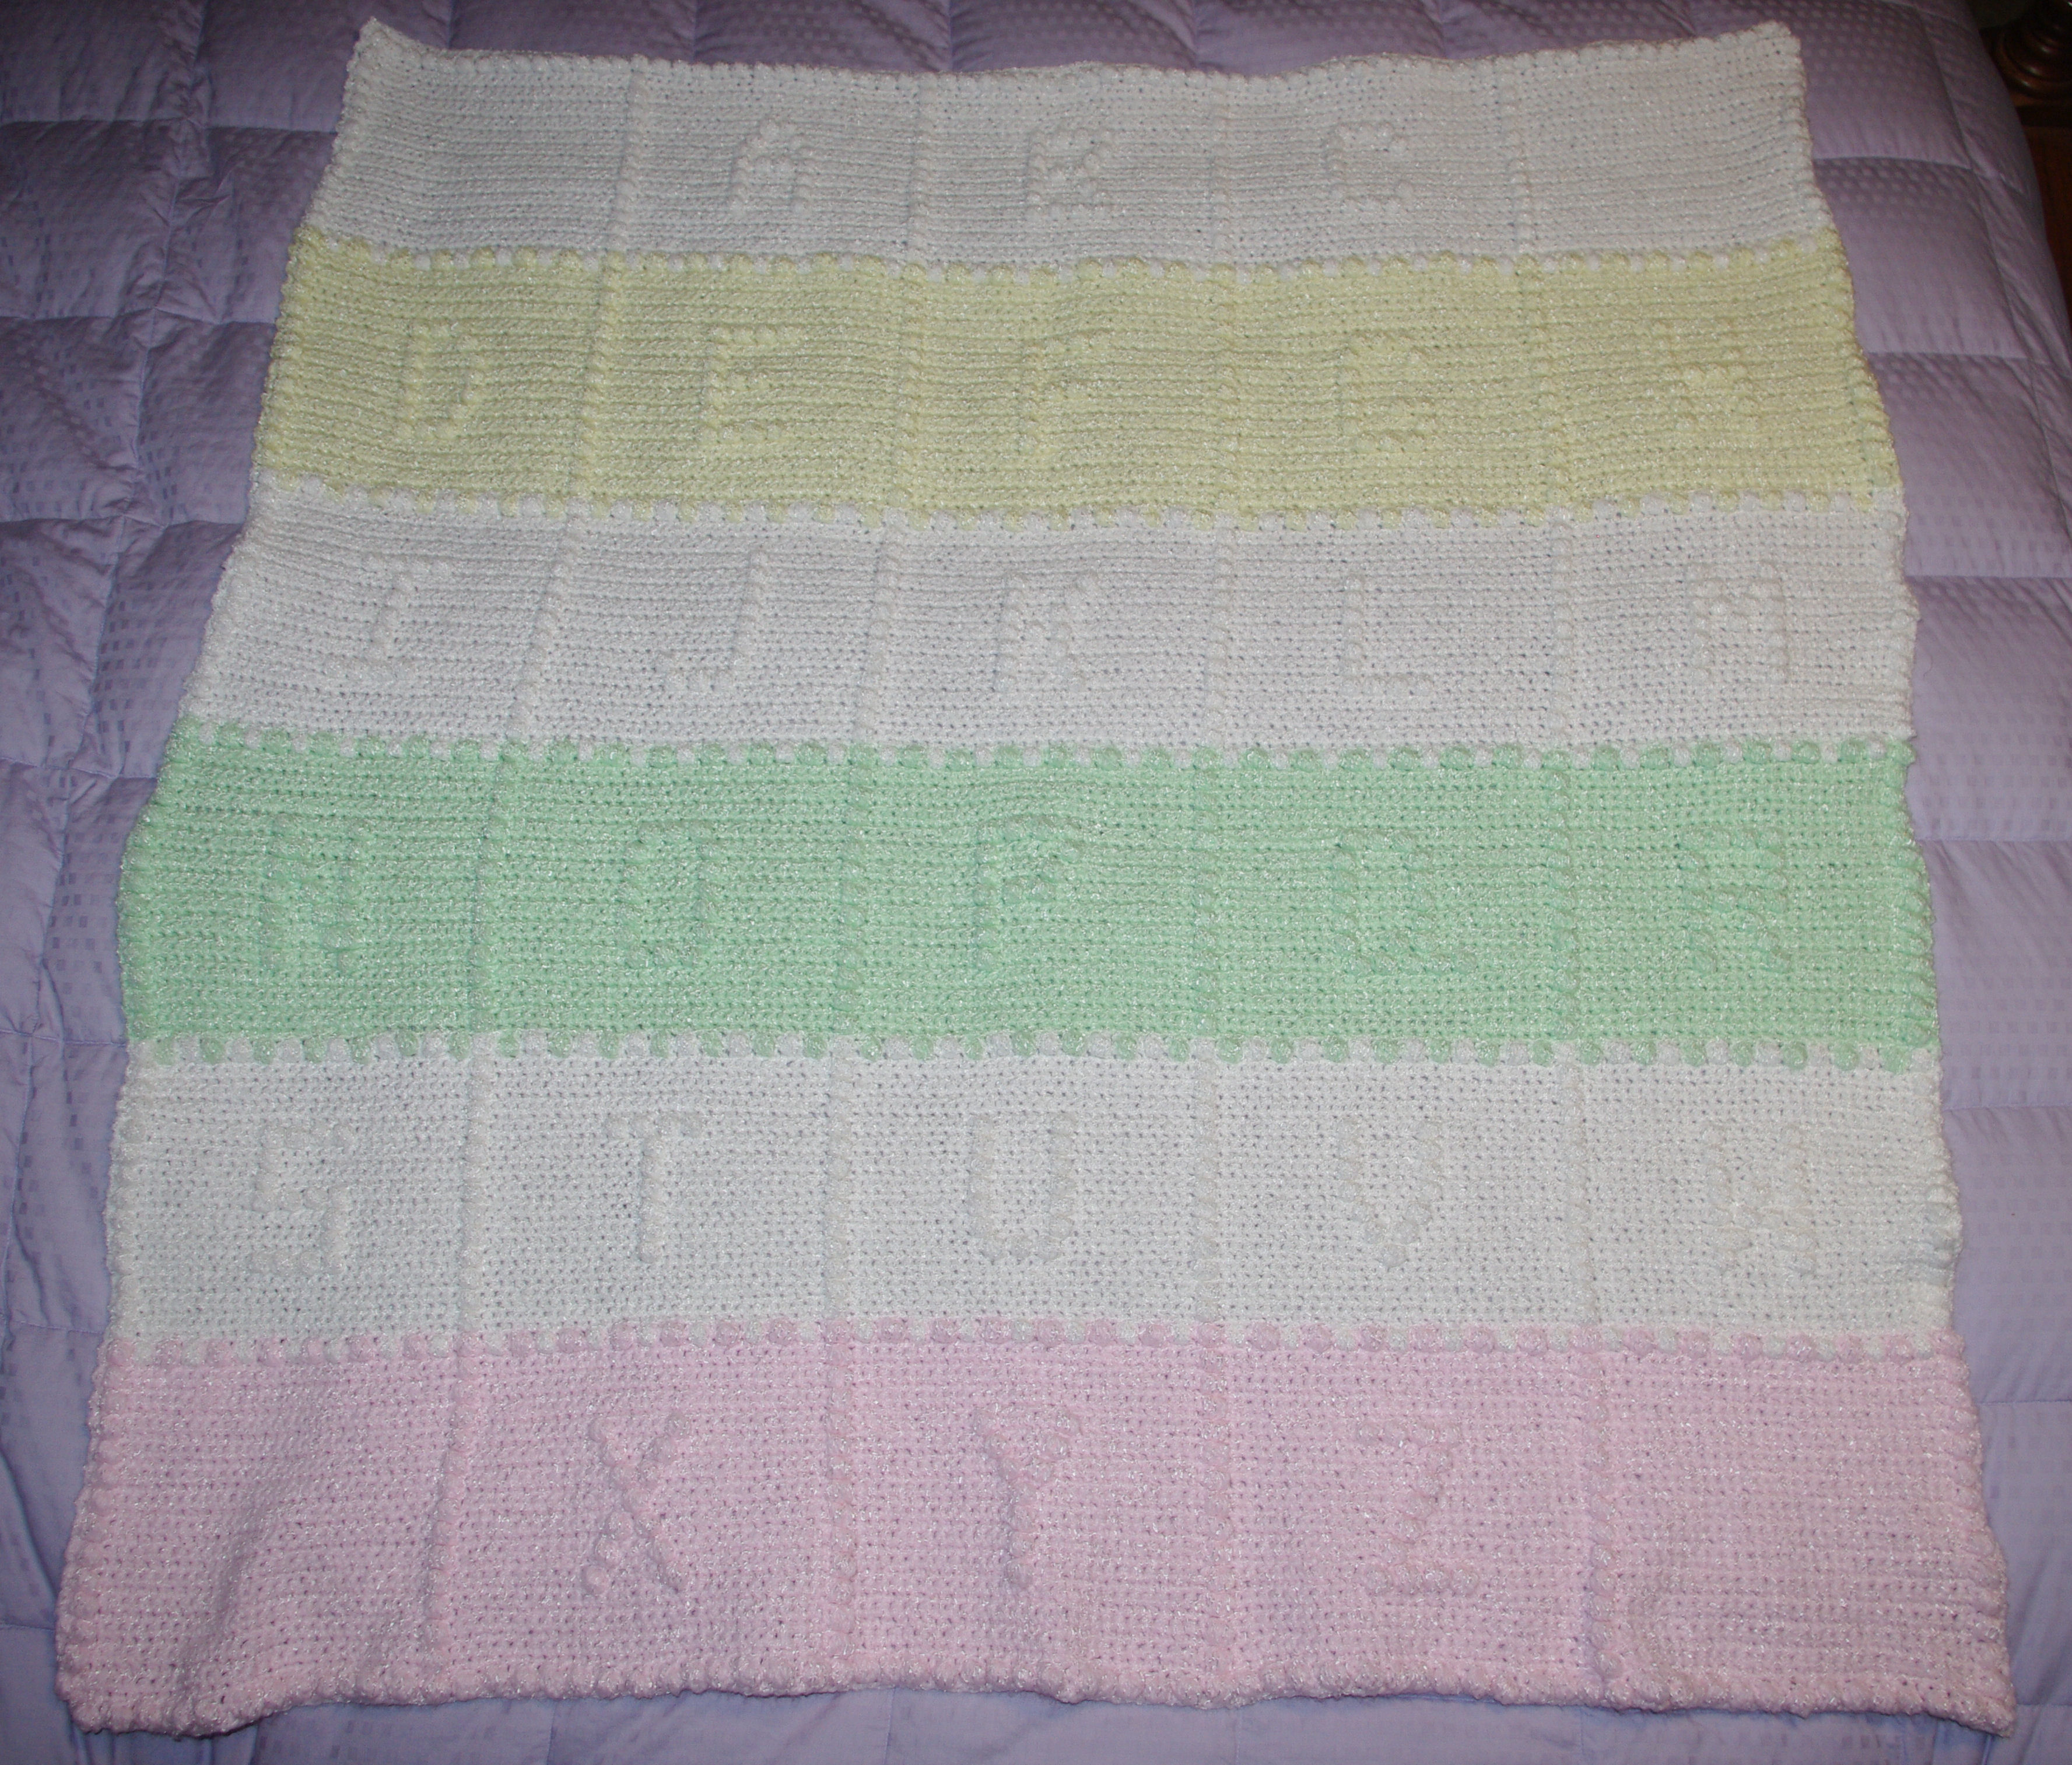 Baby's ABCs Afghan Crochet pattern